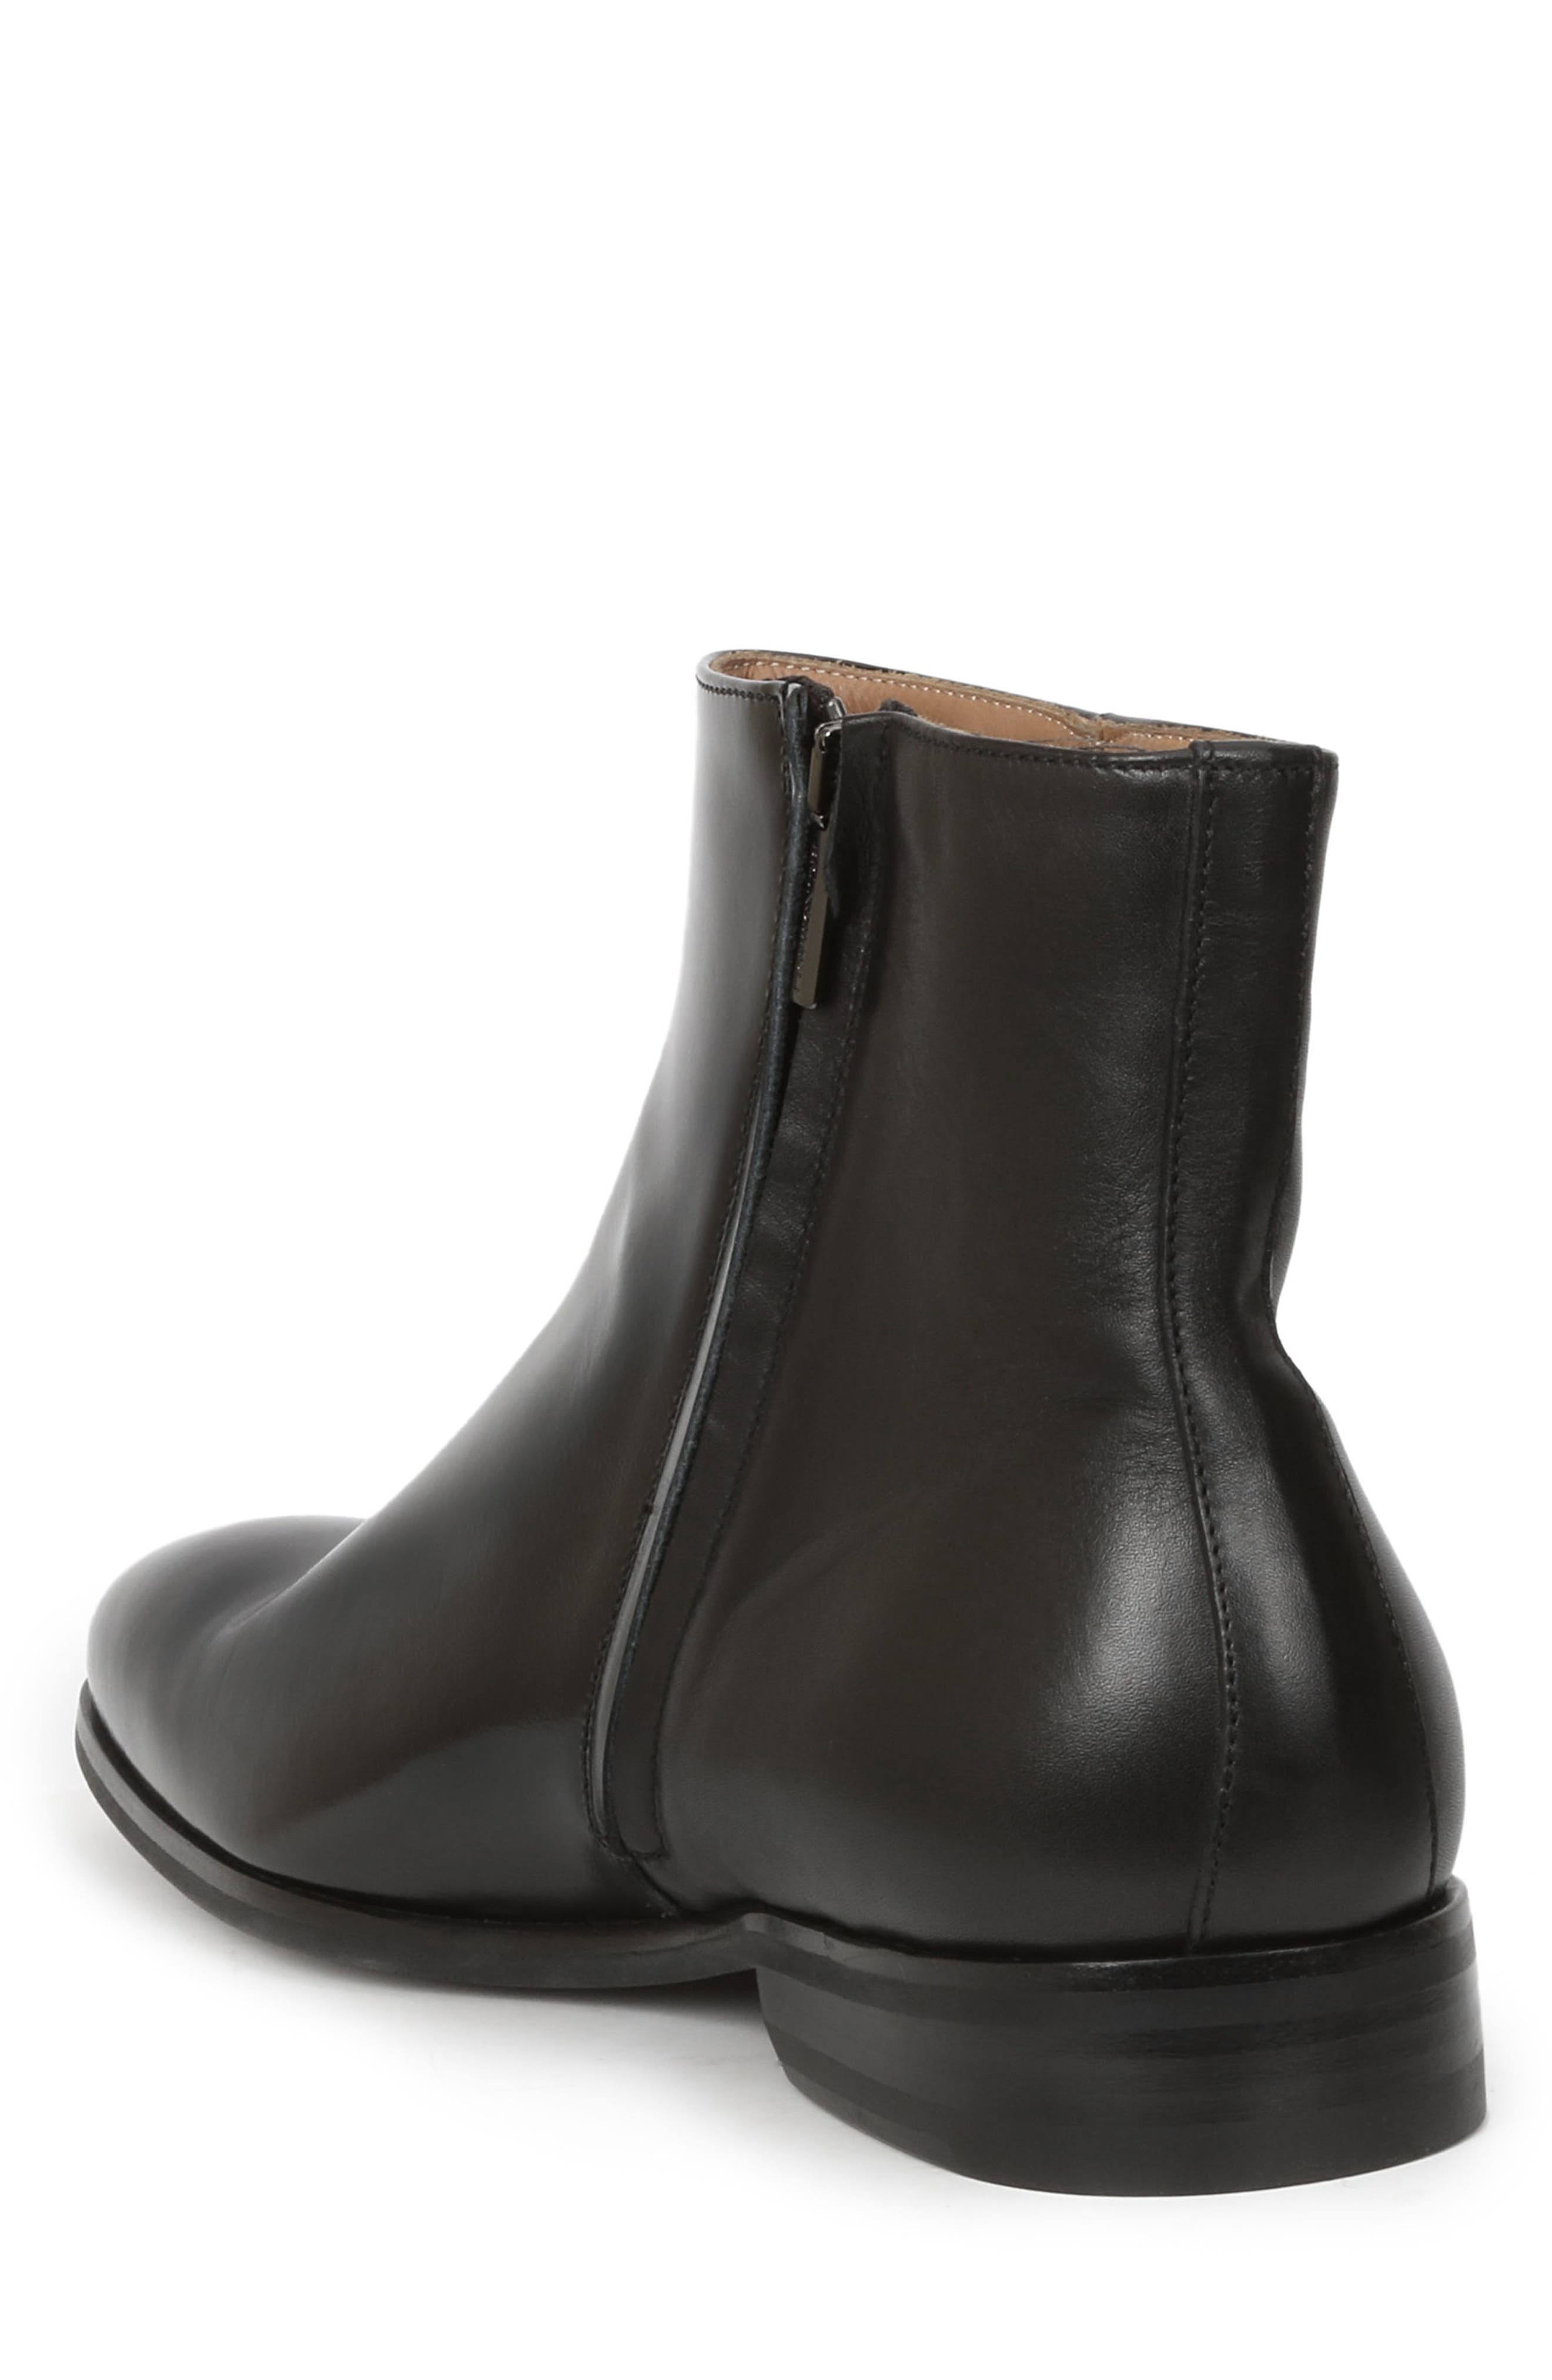 Nuncio Zip Boot,                             Alternate thumbnail 2, color,                             Black Leather